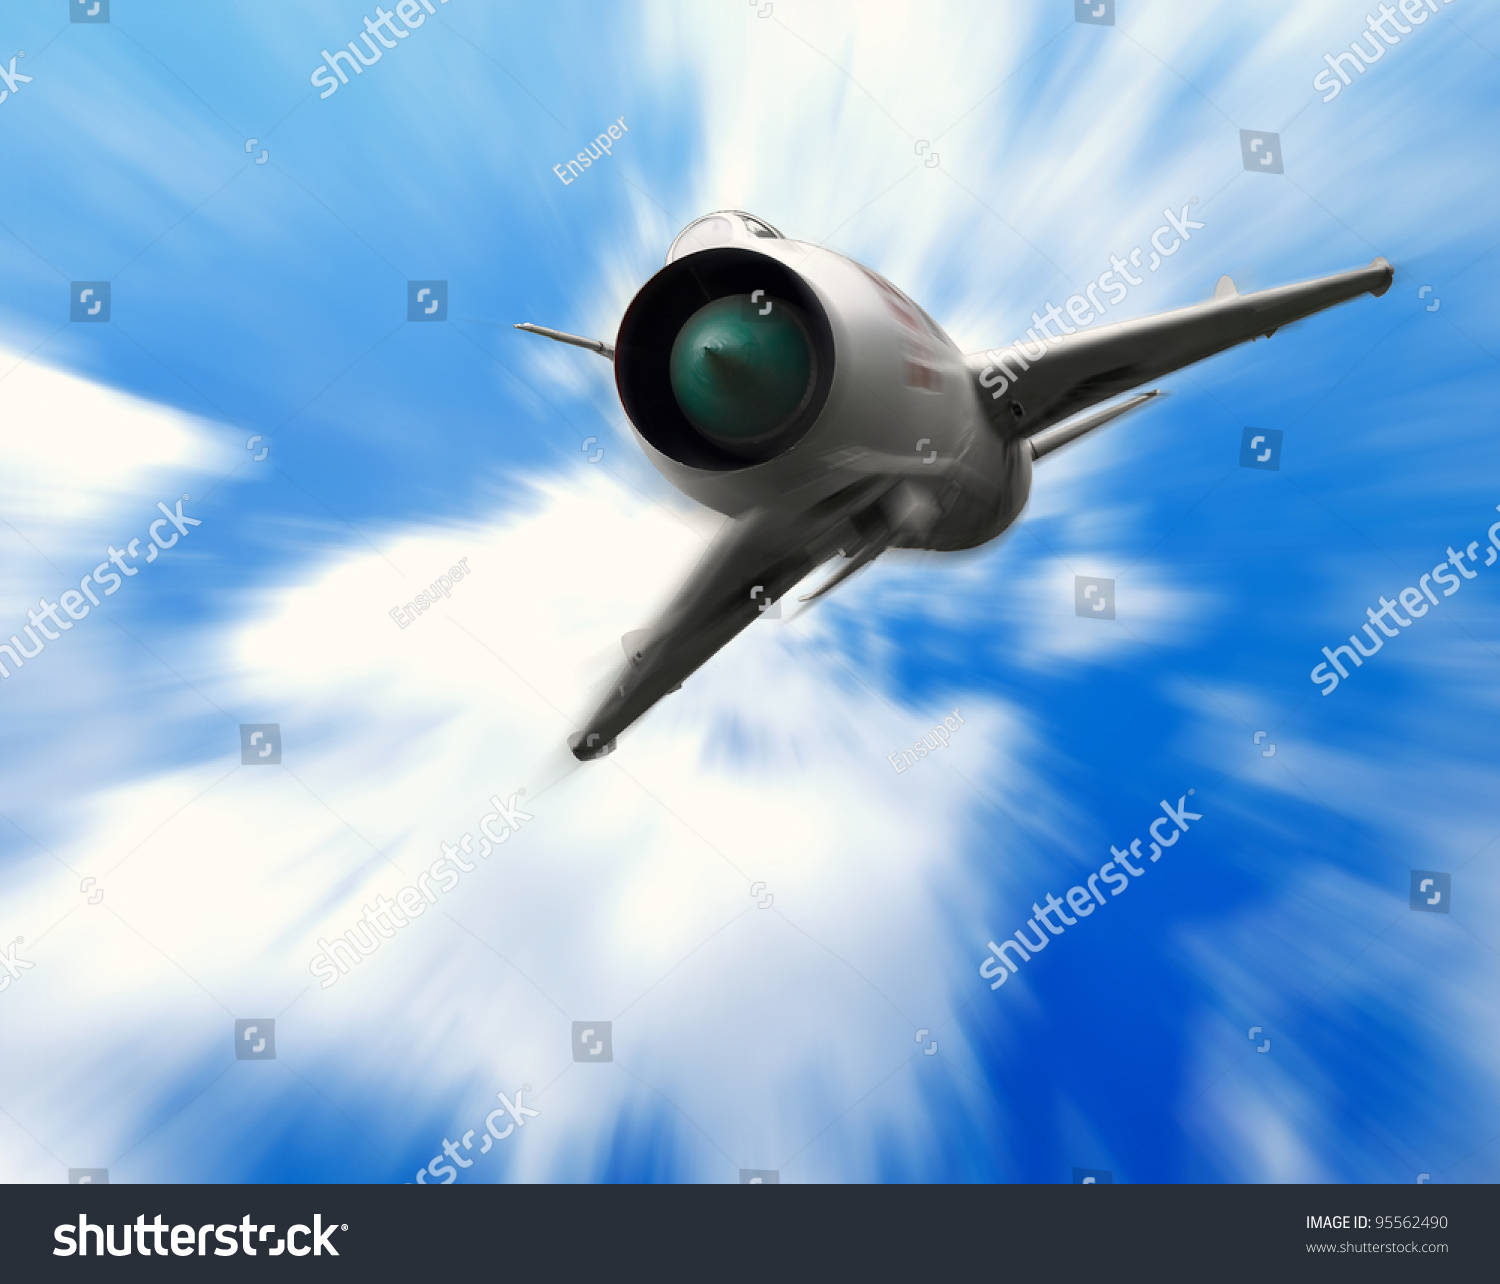 Blue Fighter Jets Stock Photo Military Aircraft Fighter Jet And Blue